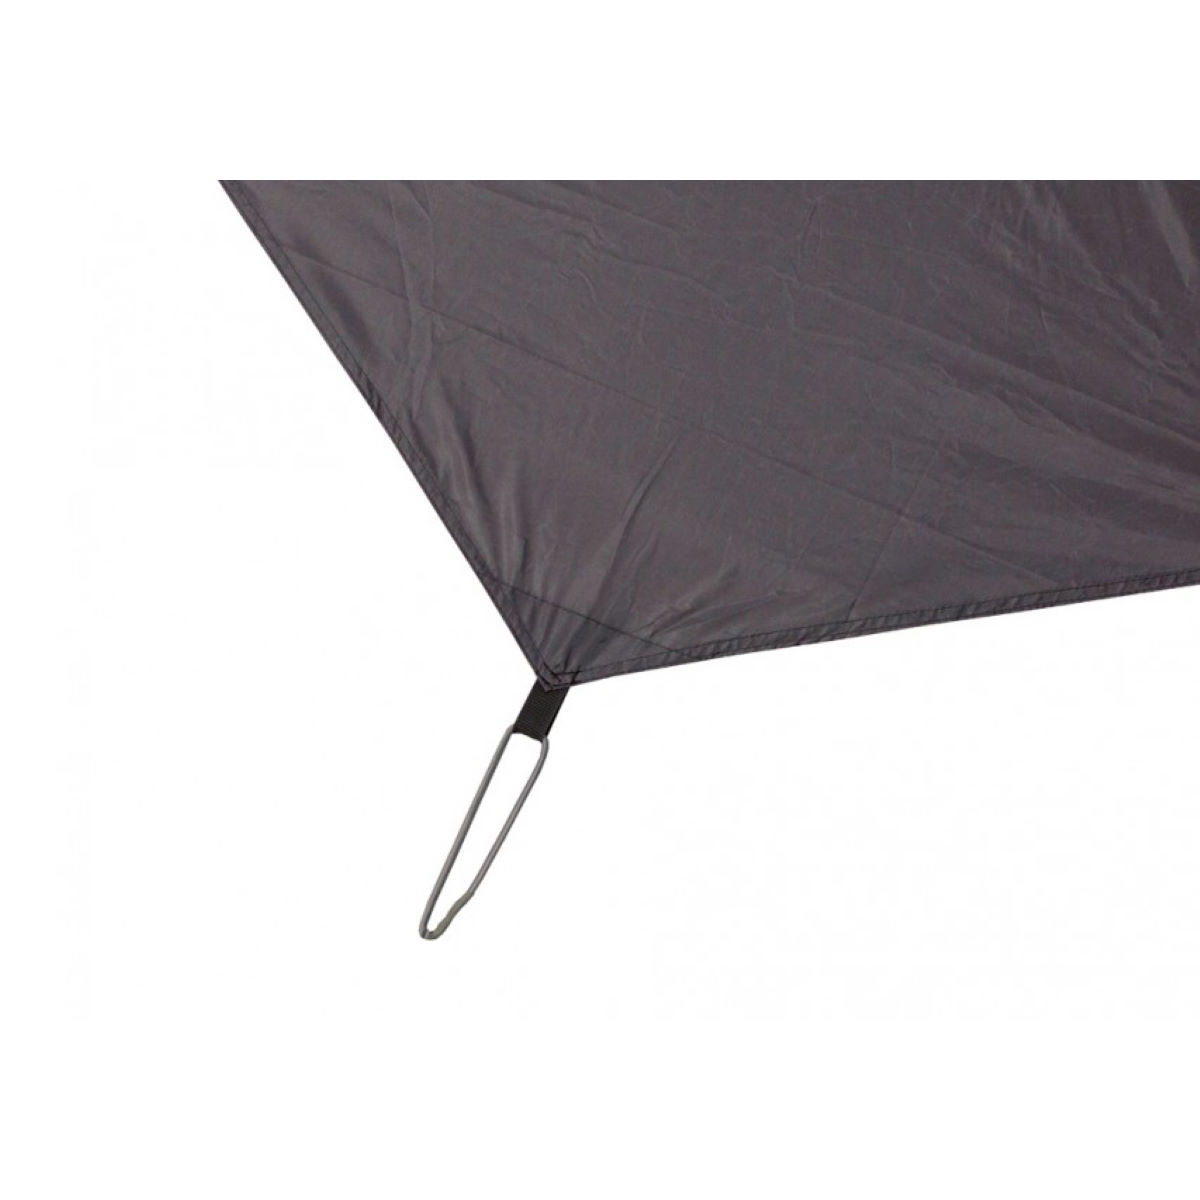 Vango Vango Groundsheet Protector - GP531 - Scafell 300   Inners and Floors